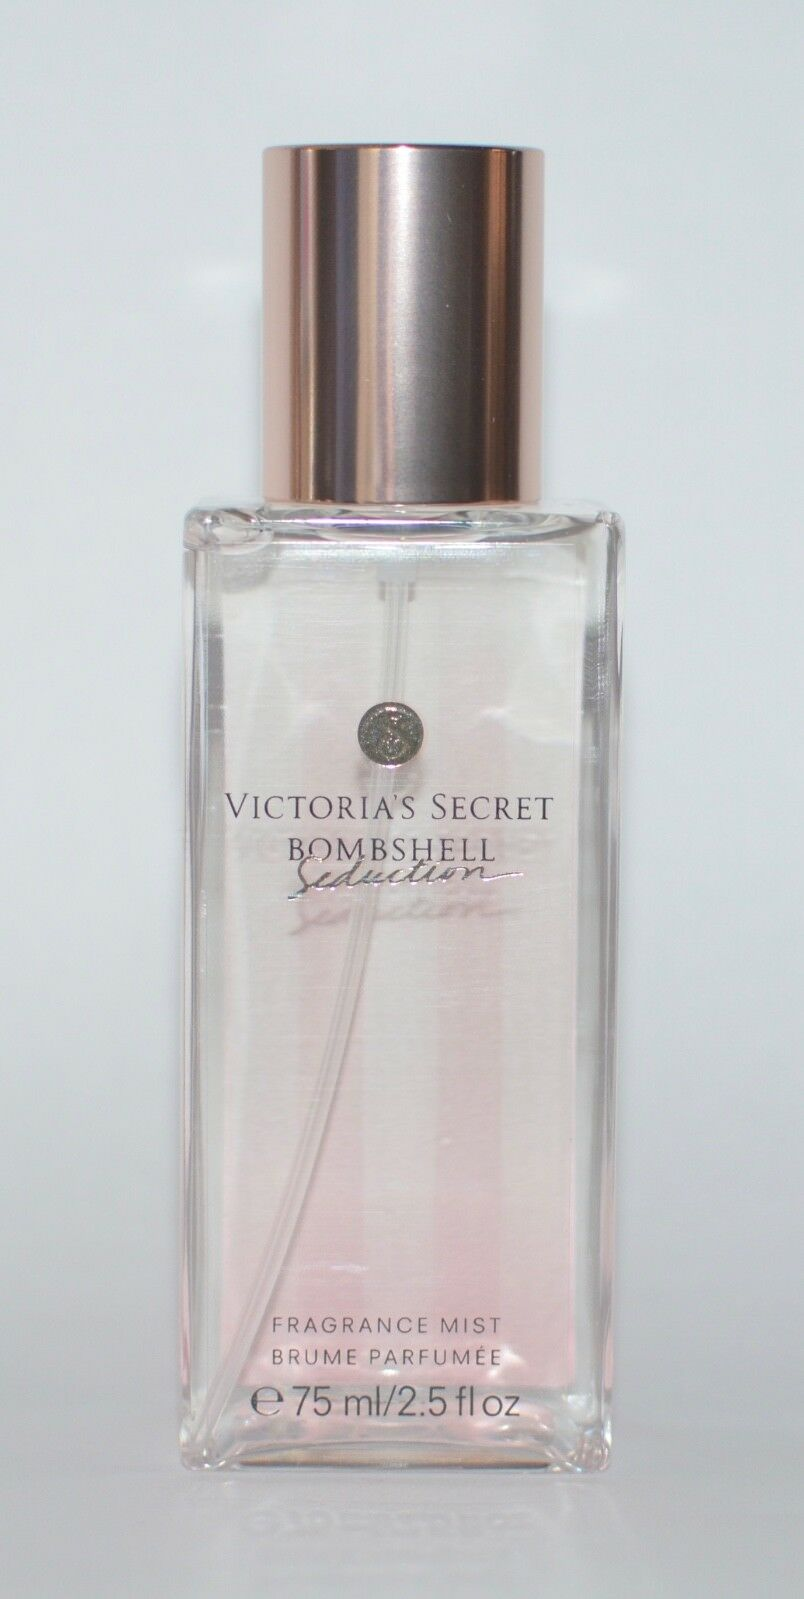 d11a47a15f7 2 Victoria s Secret Bombshell Seduction Mini Fragrance Mist Spray ...